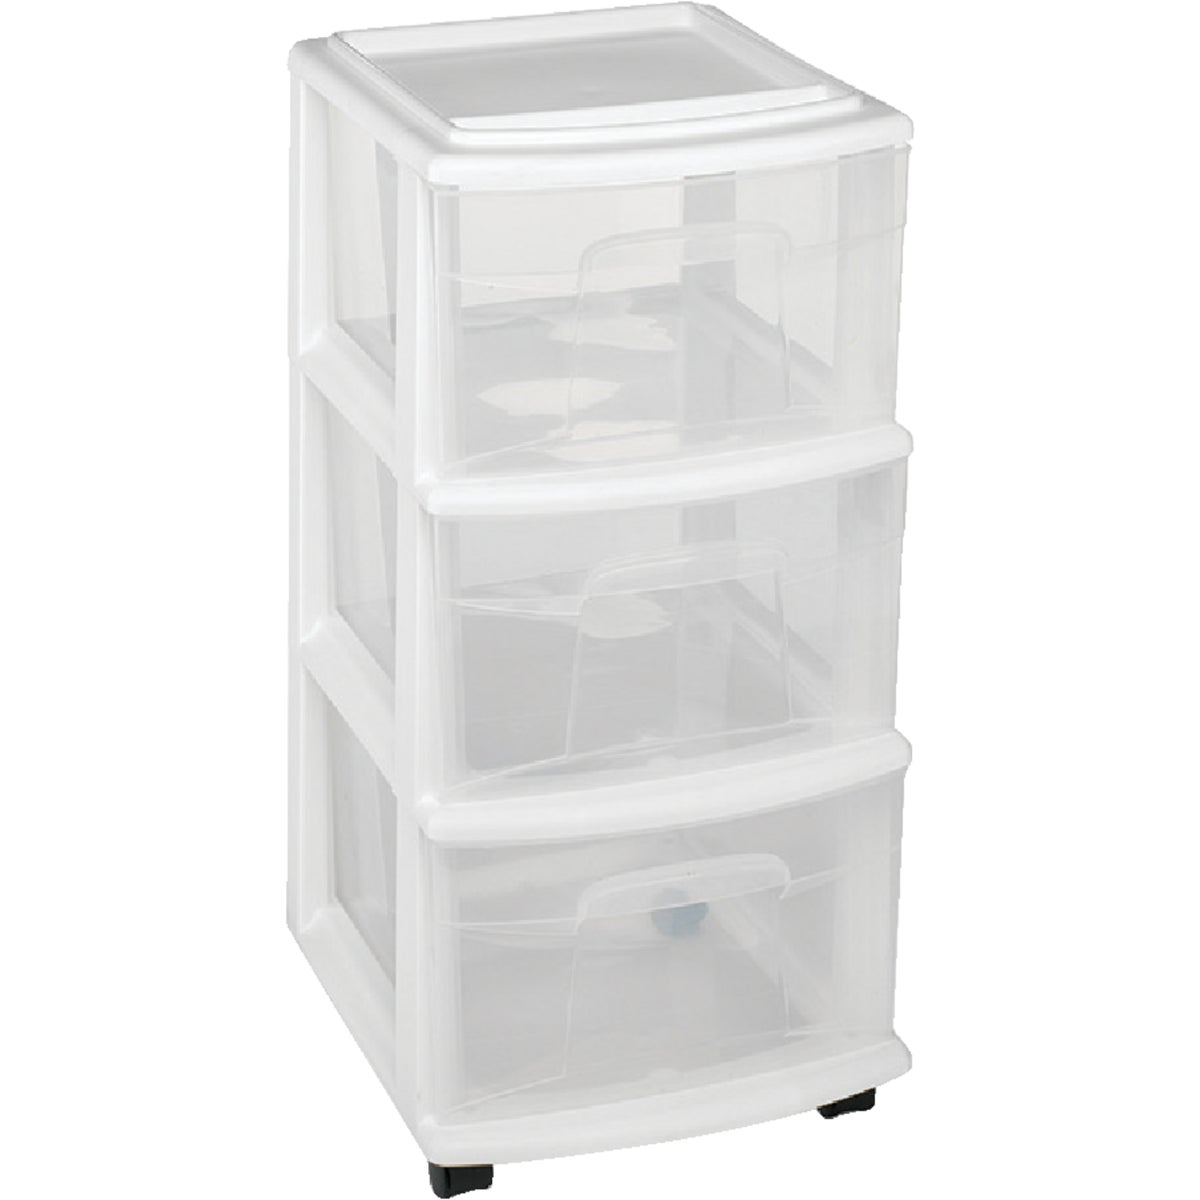 3-DRAWER CART - 7000343 by Homz/ Tamor